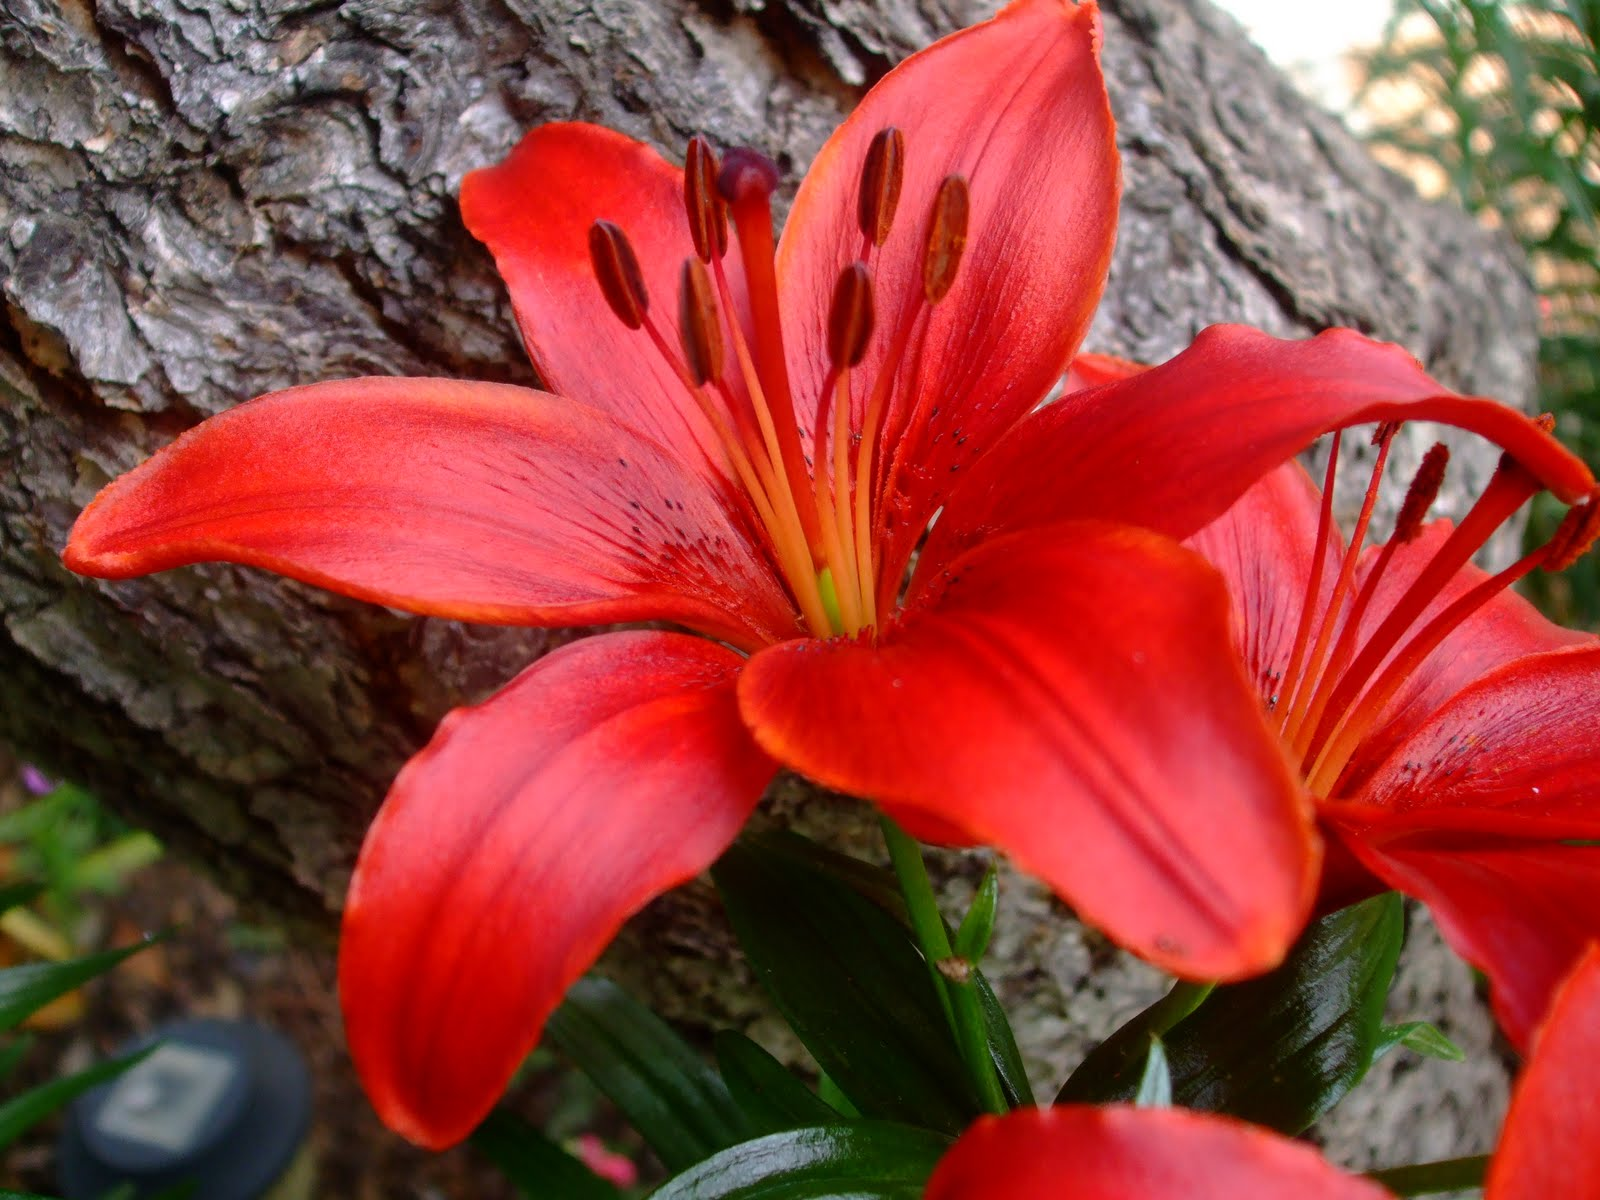 Red lily flowers 1 the vibgyor chronicles red lily flowers 1 izmirmasajfo